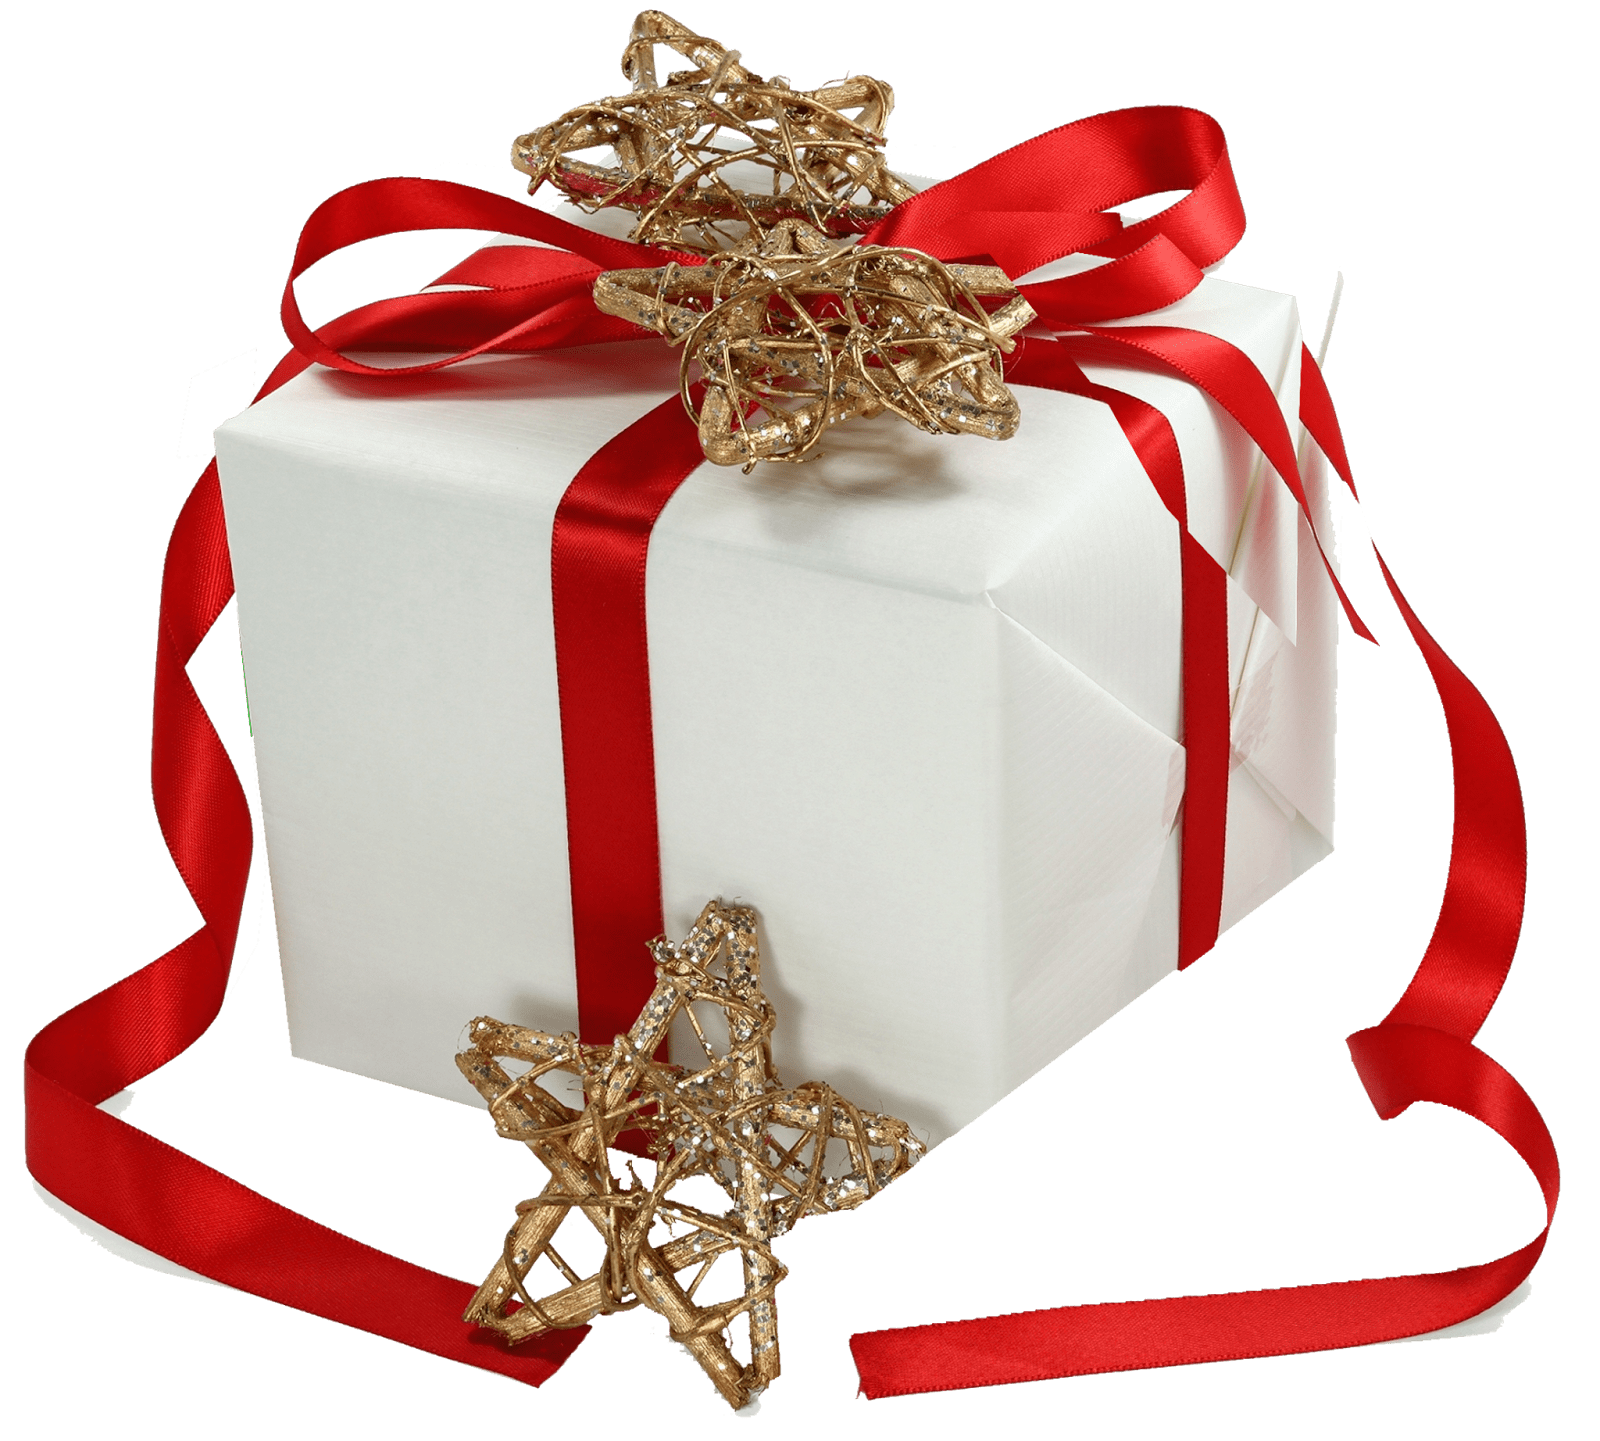 Christmas Gift Box Png.Christmas Gift Transparent Png Clipart Free Download Ywd